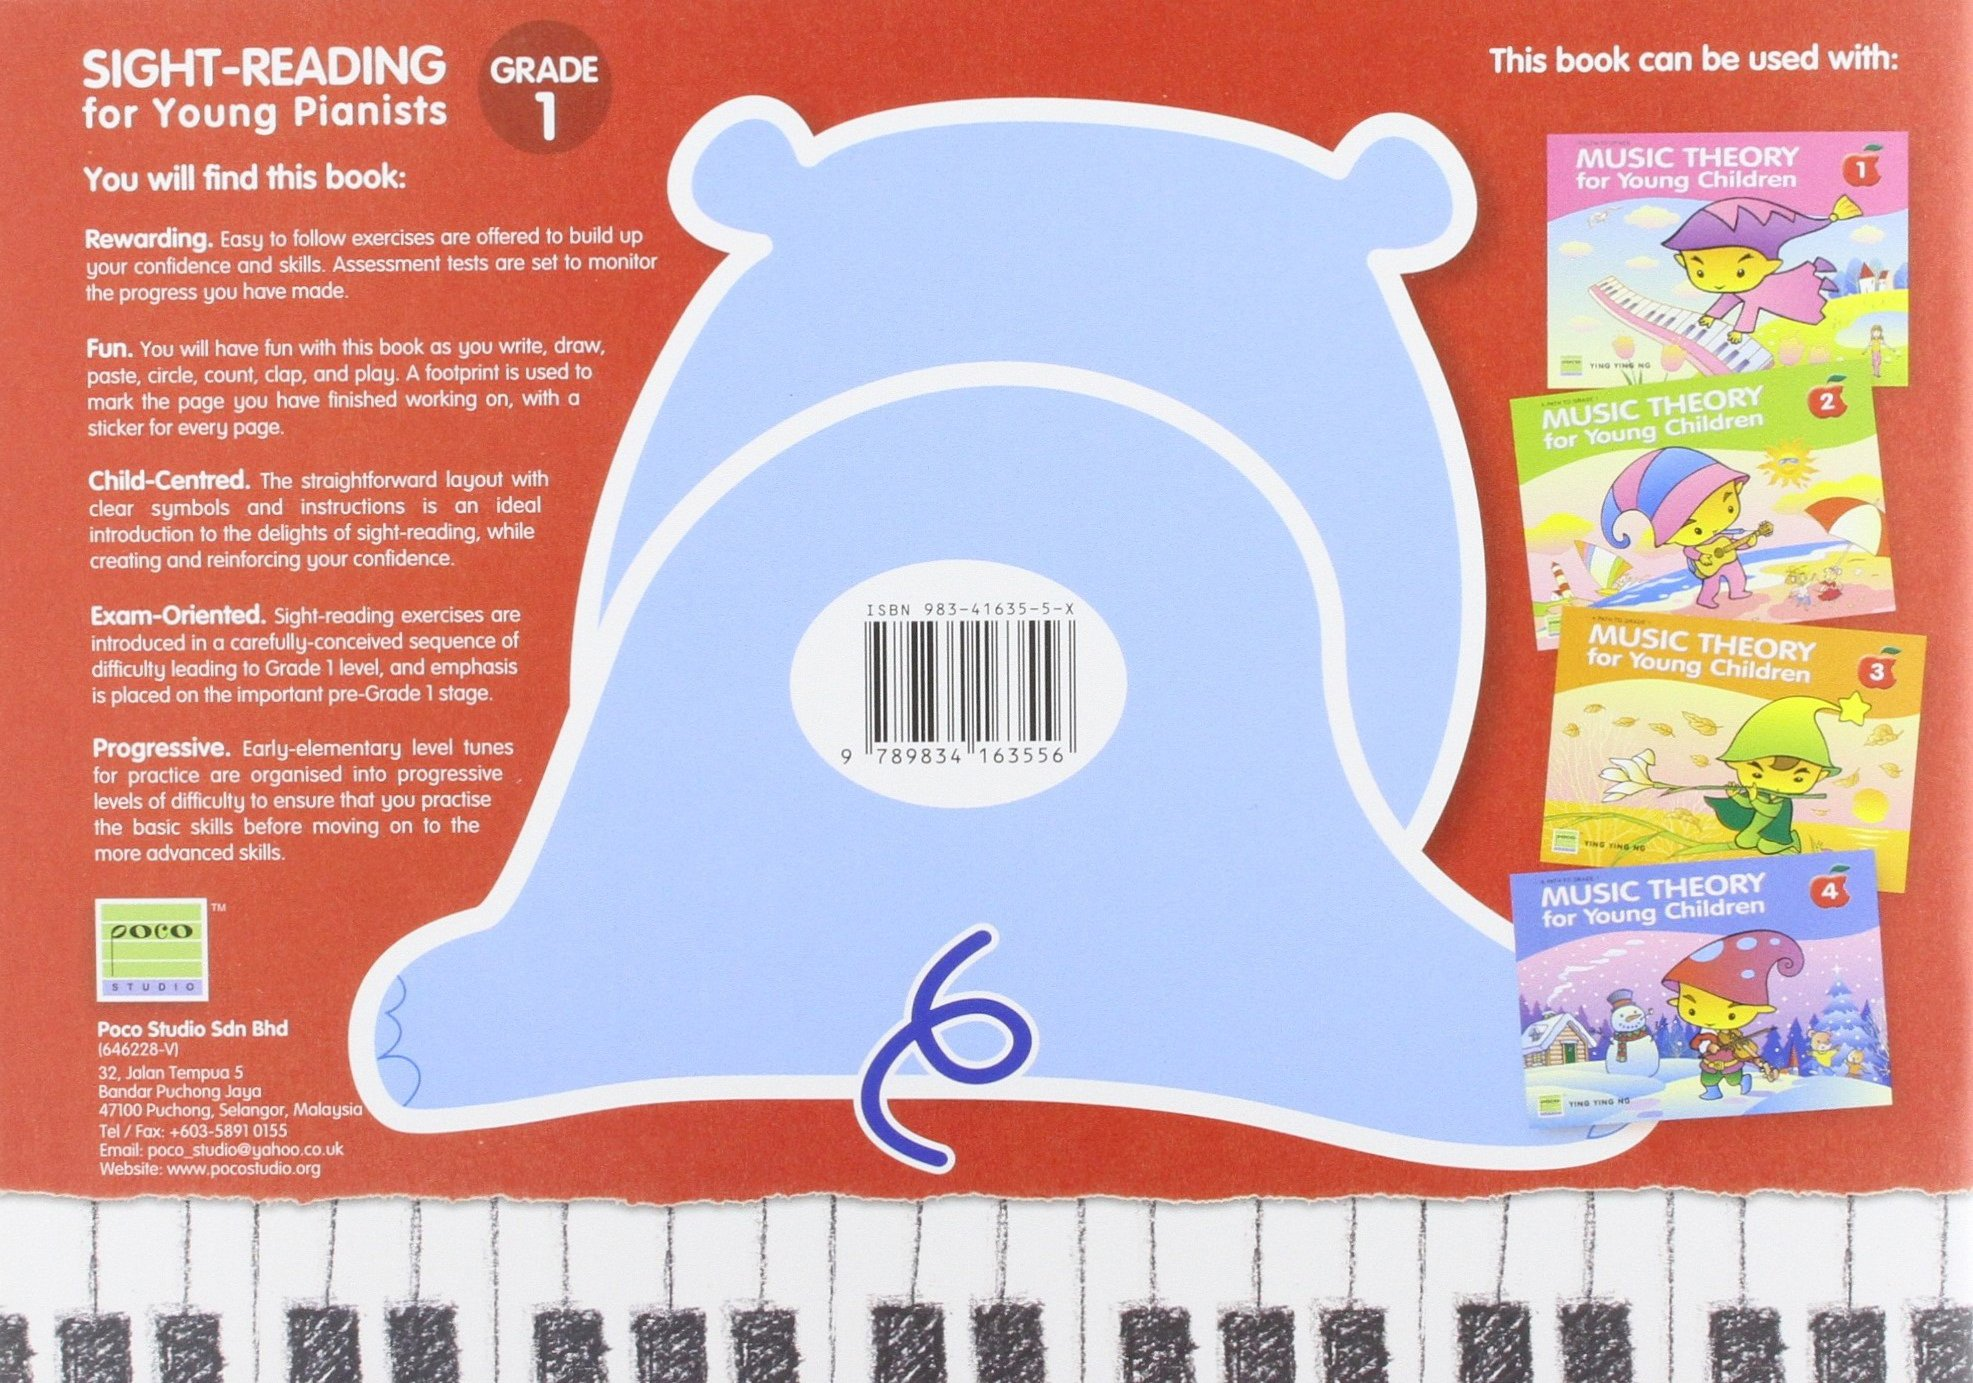 Sight Reading for Young Pianists Grade 1: 9789834163556: Amazon.com ...